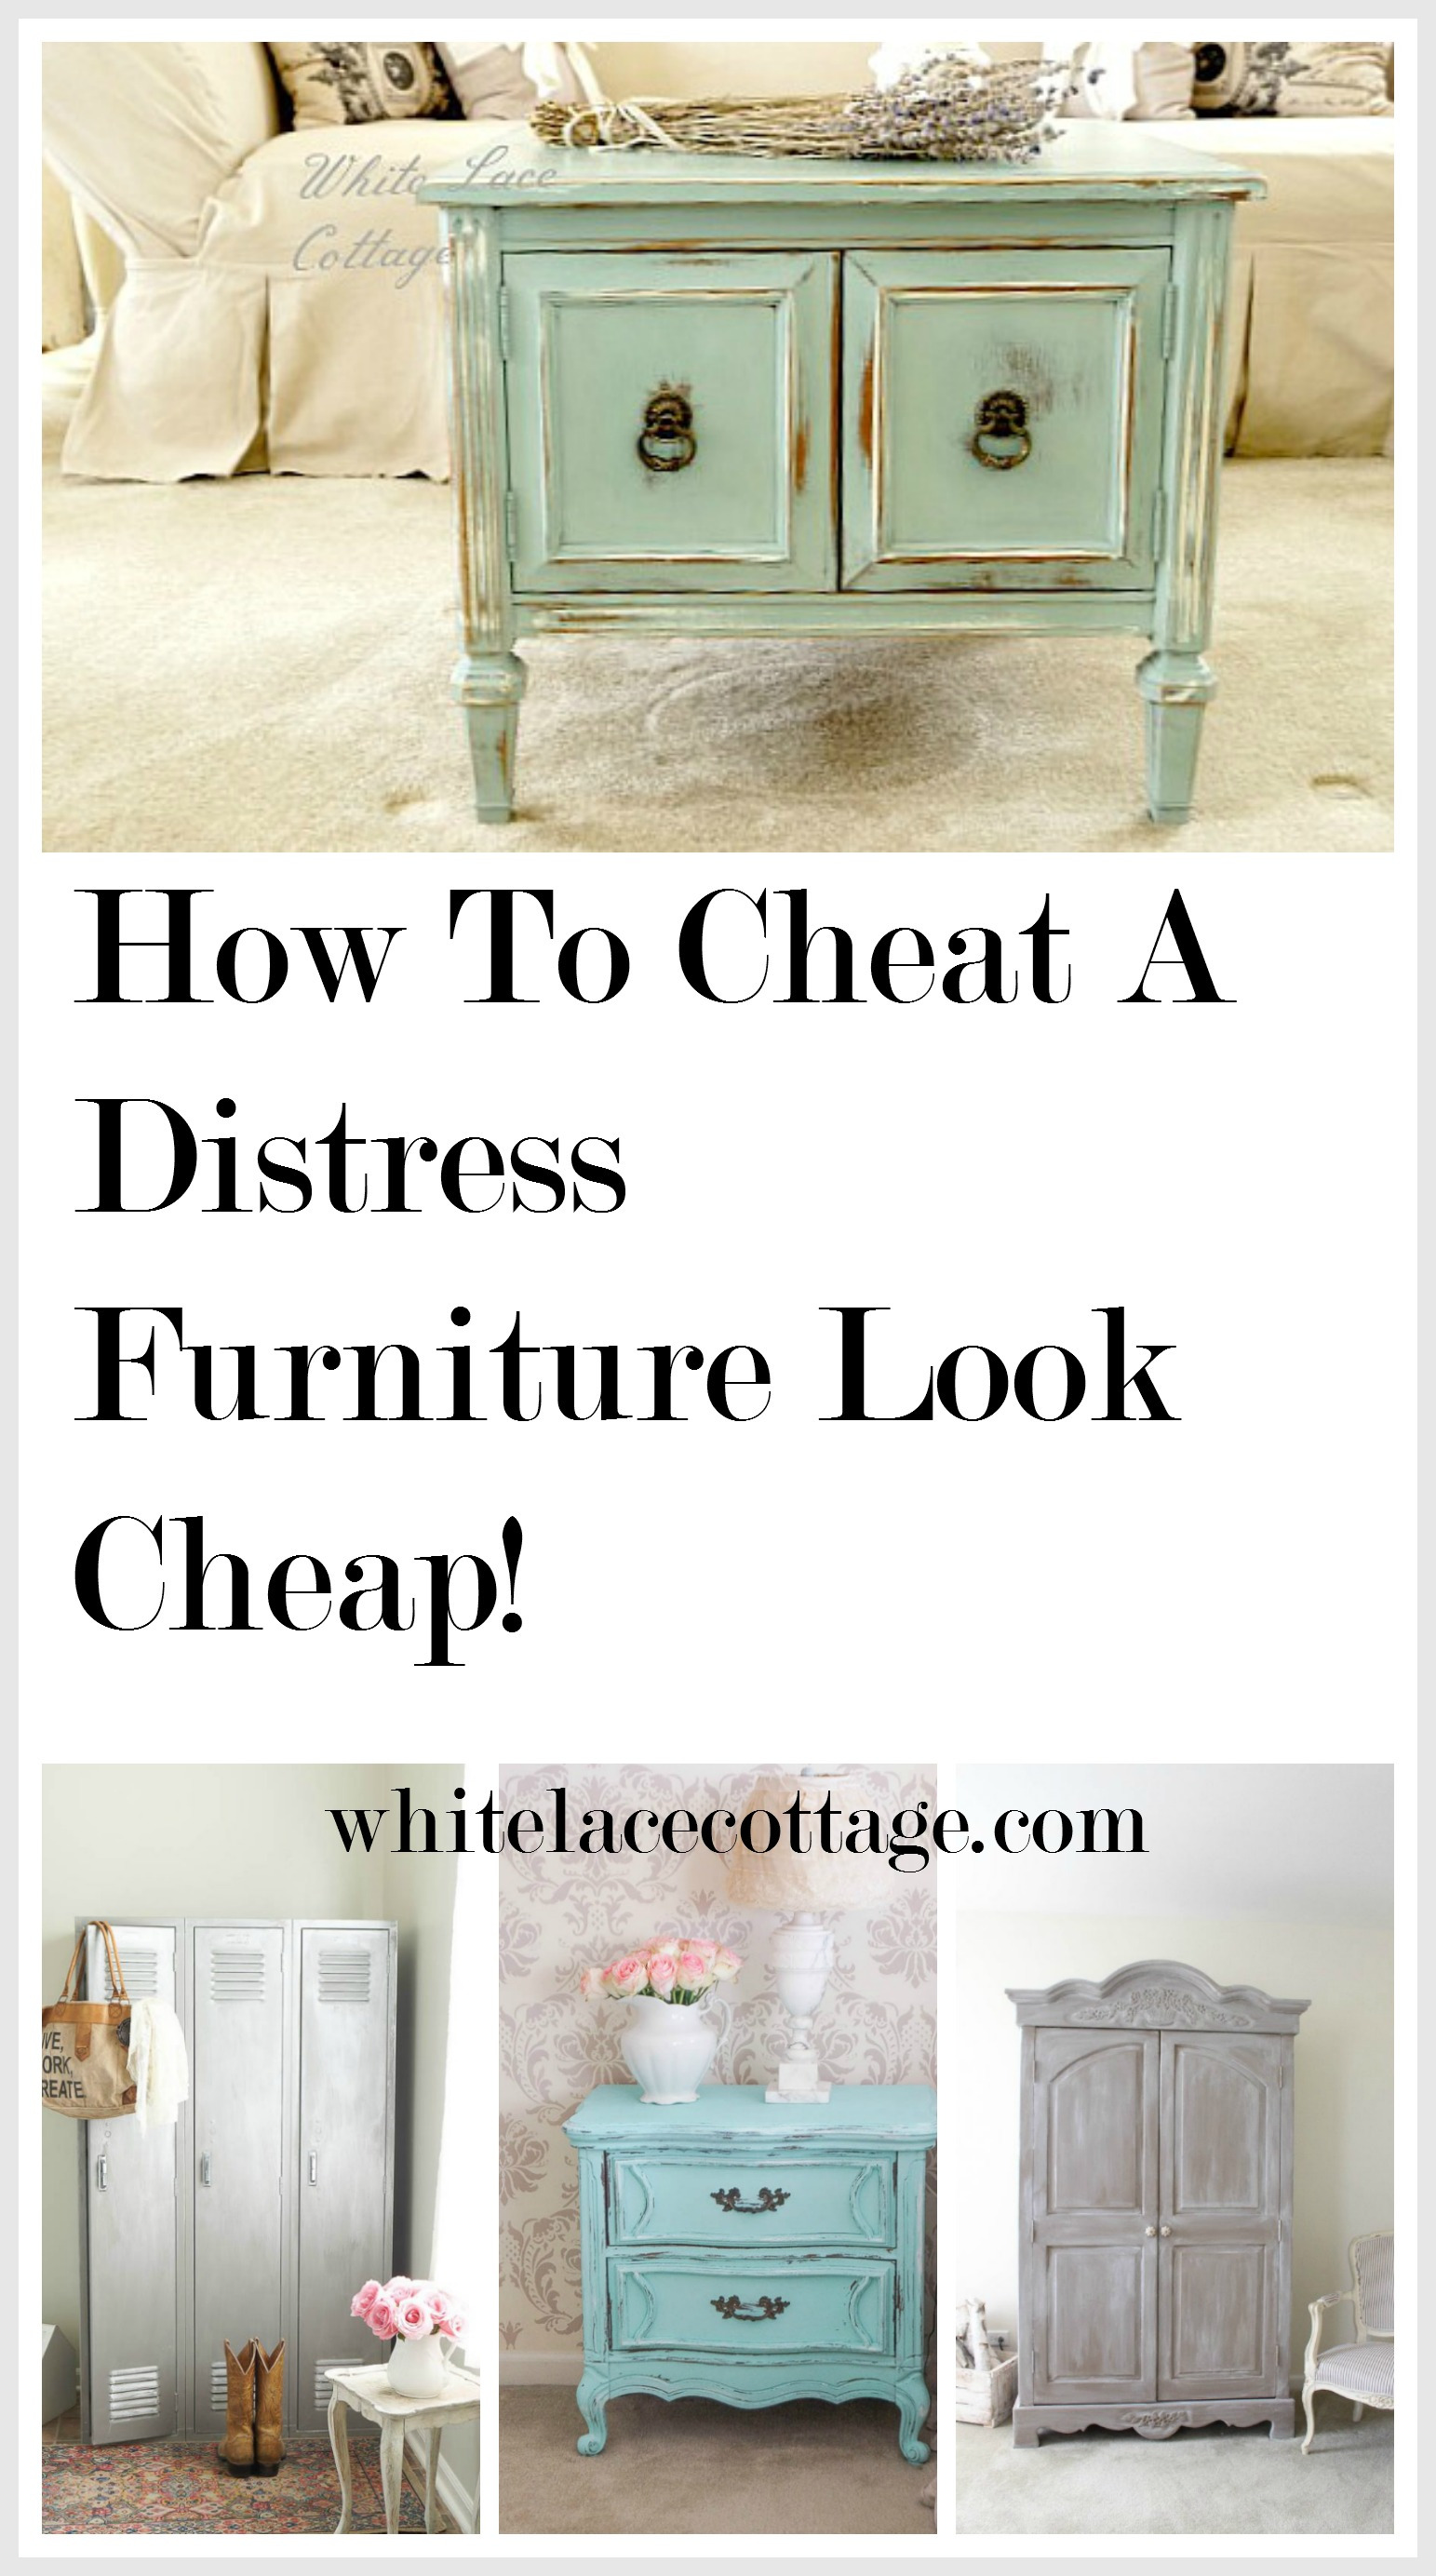 How To Cheat A Distress Furniture Look Cheap